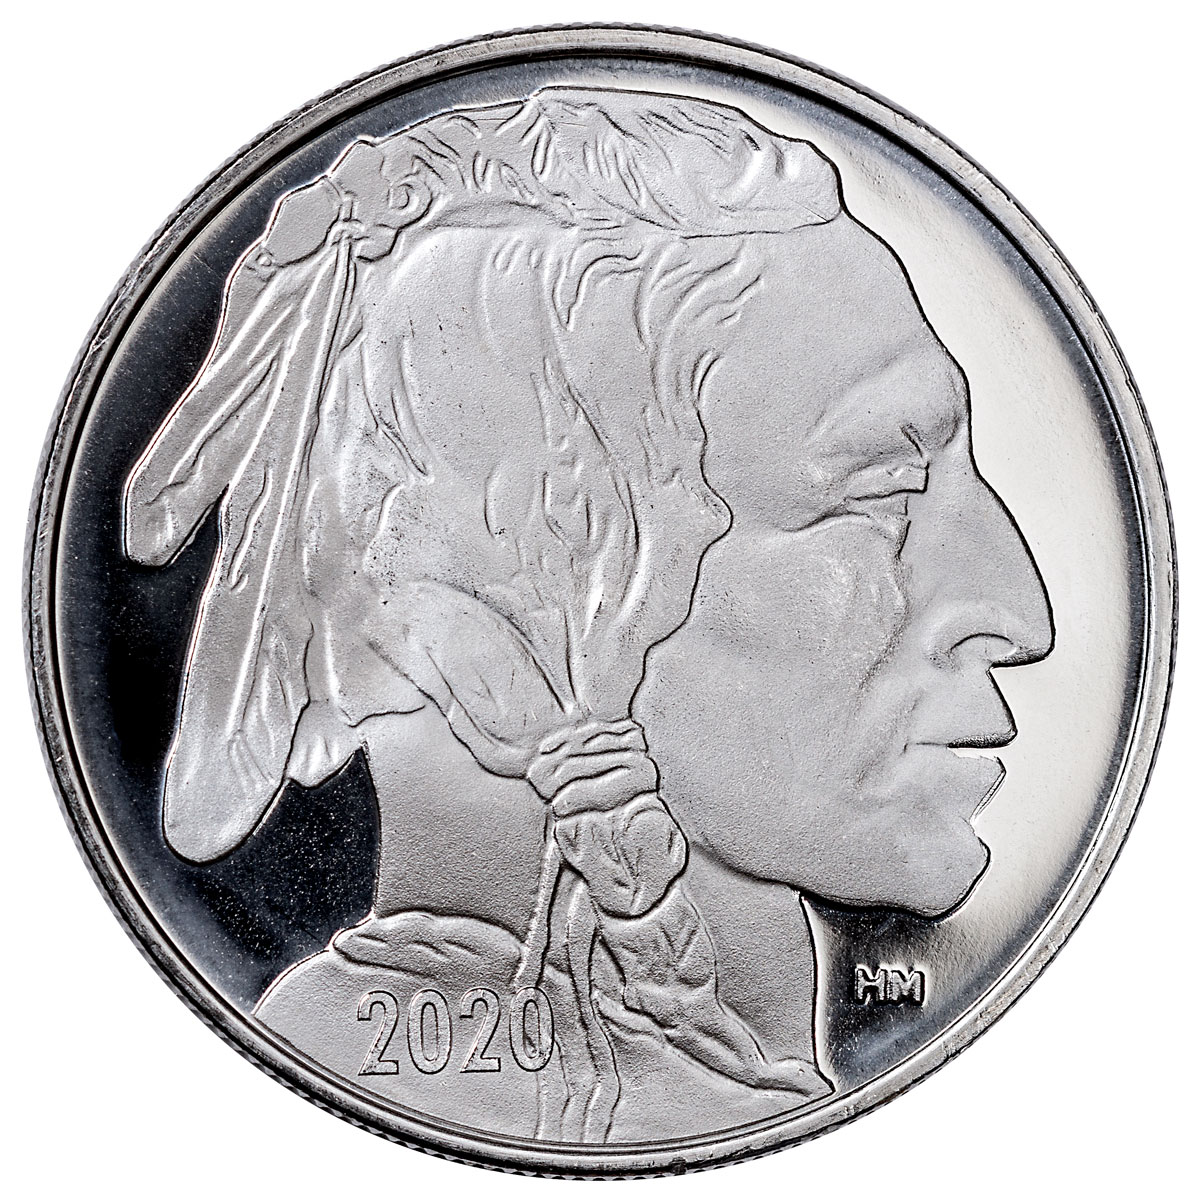 2020 Highland Mint Buffalo Nickel Design 1 oz Silver Round GEM BU